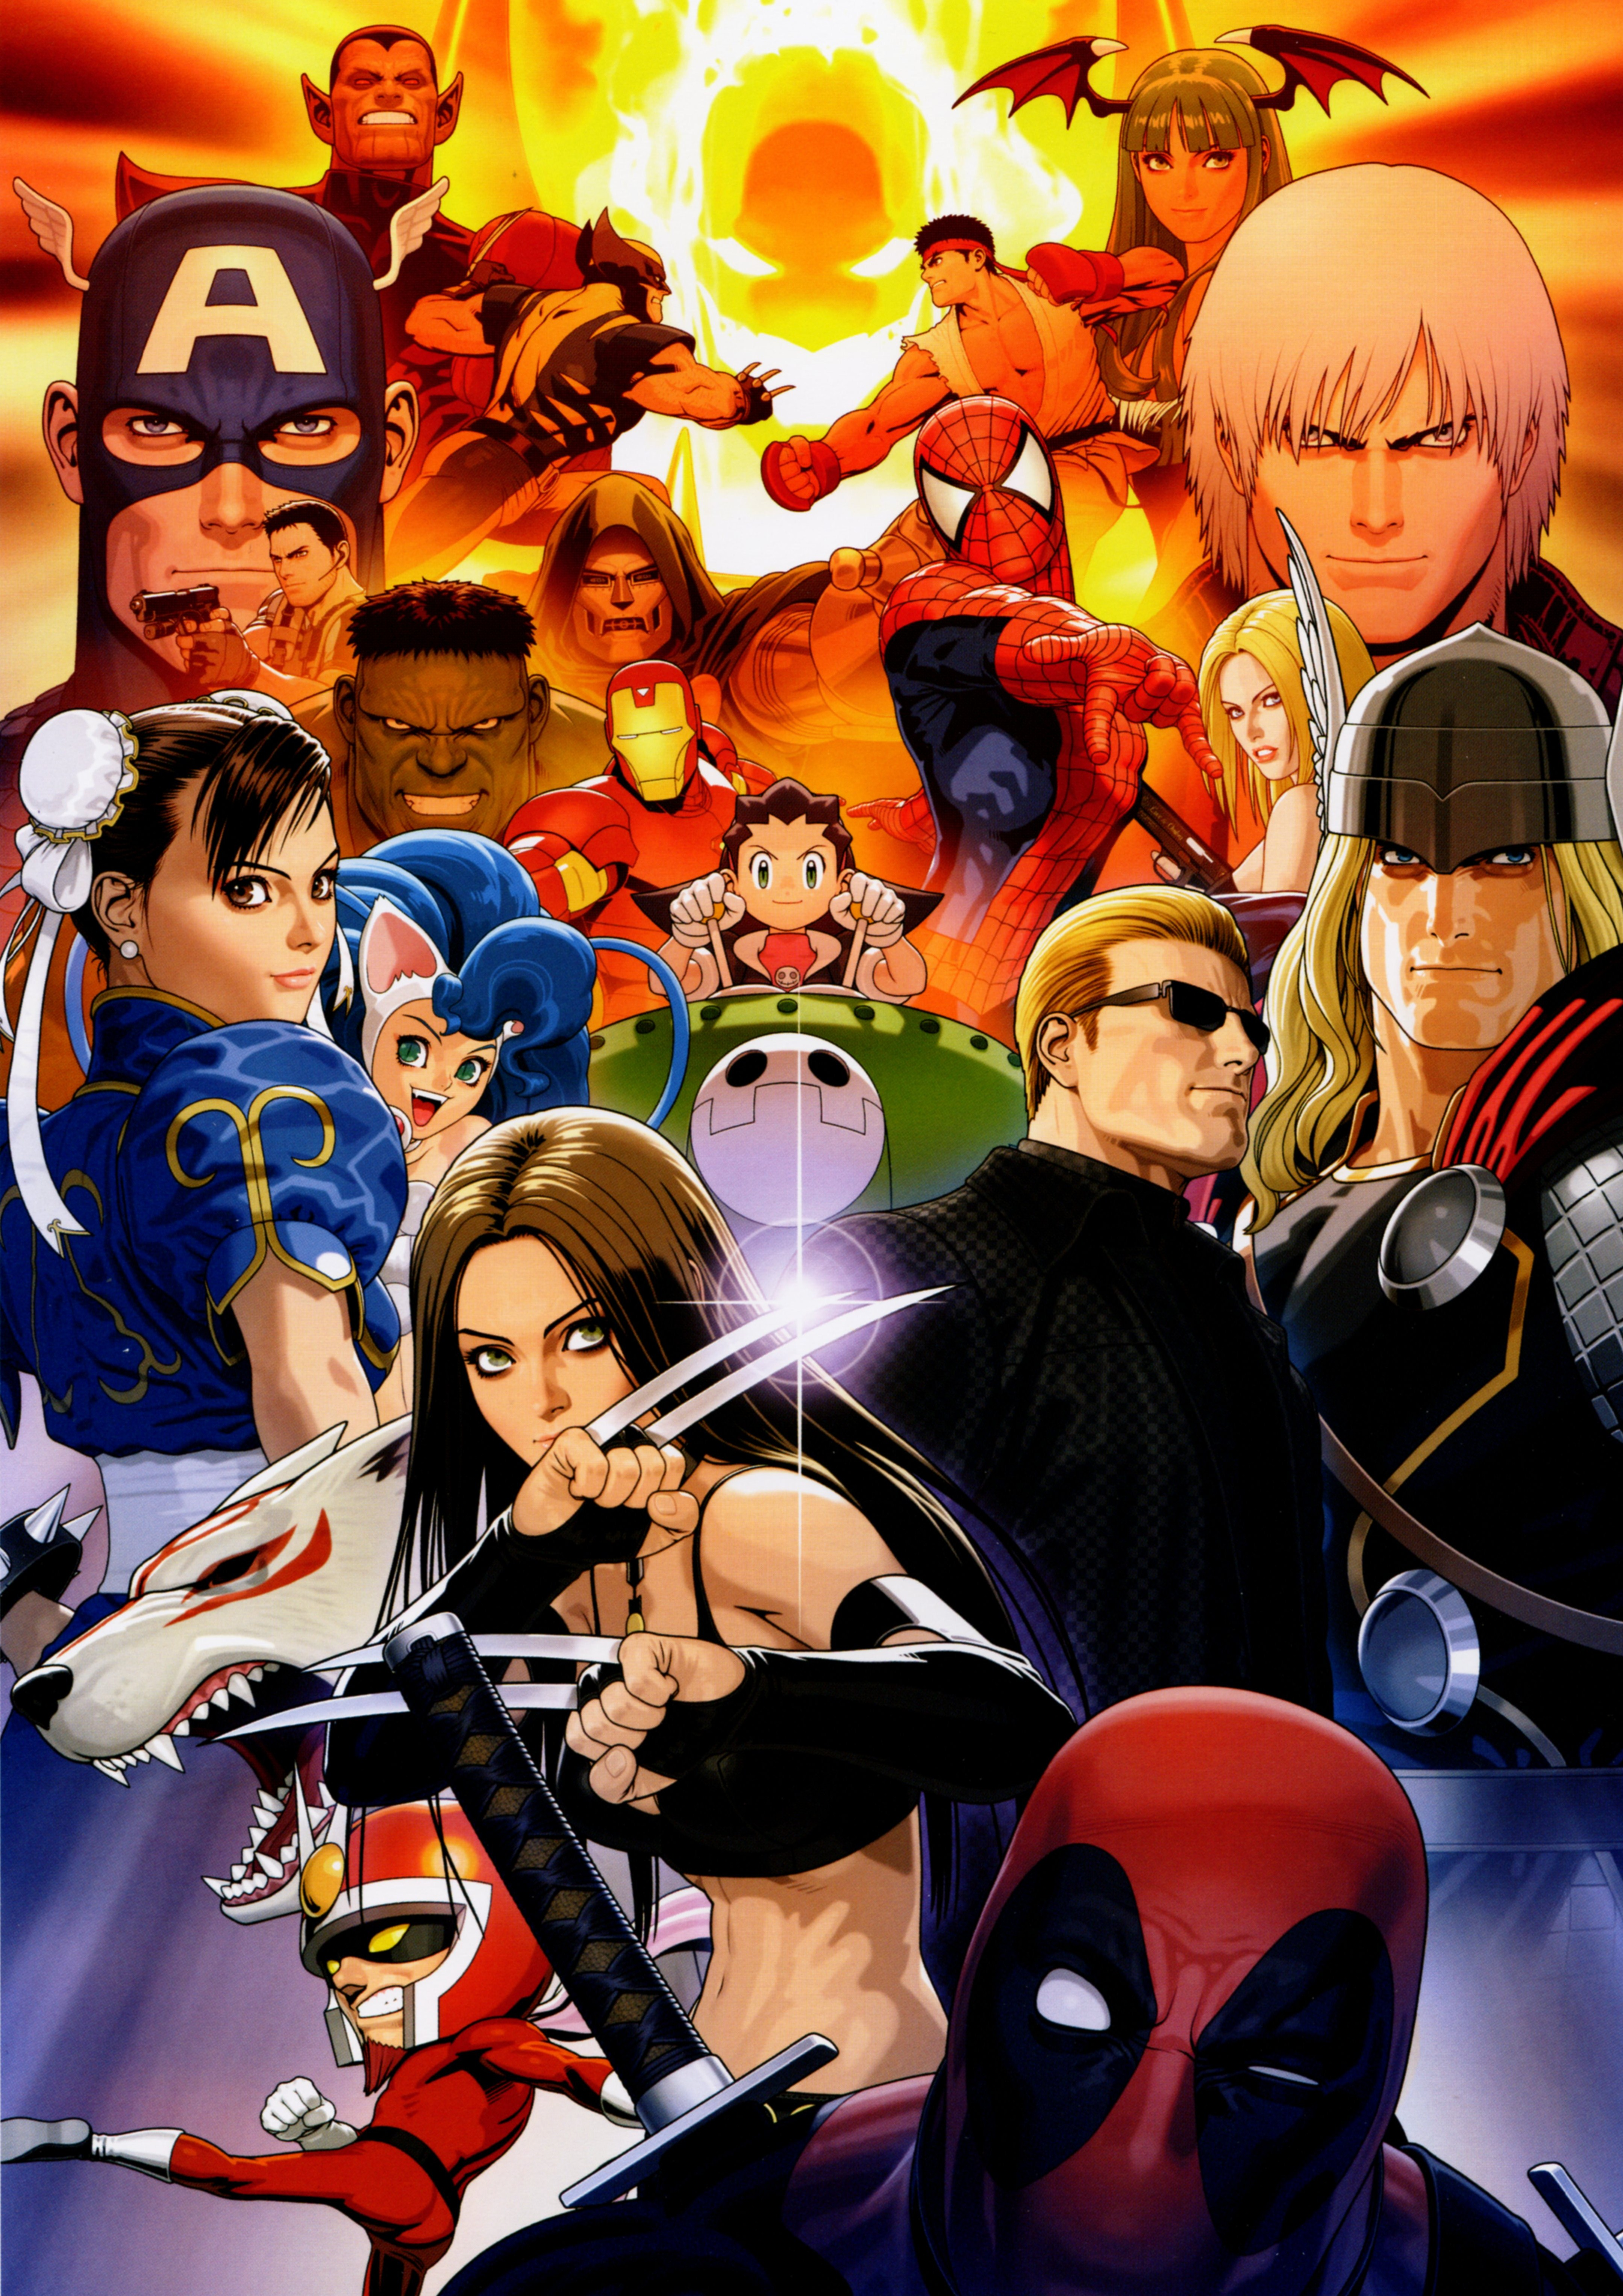 Marvel vs. Capcom 3 Art Gallery 7 out of 16 image gallery